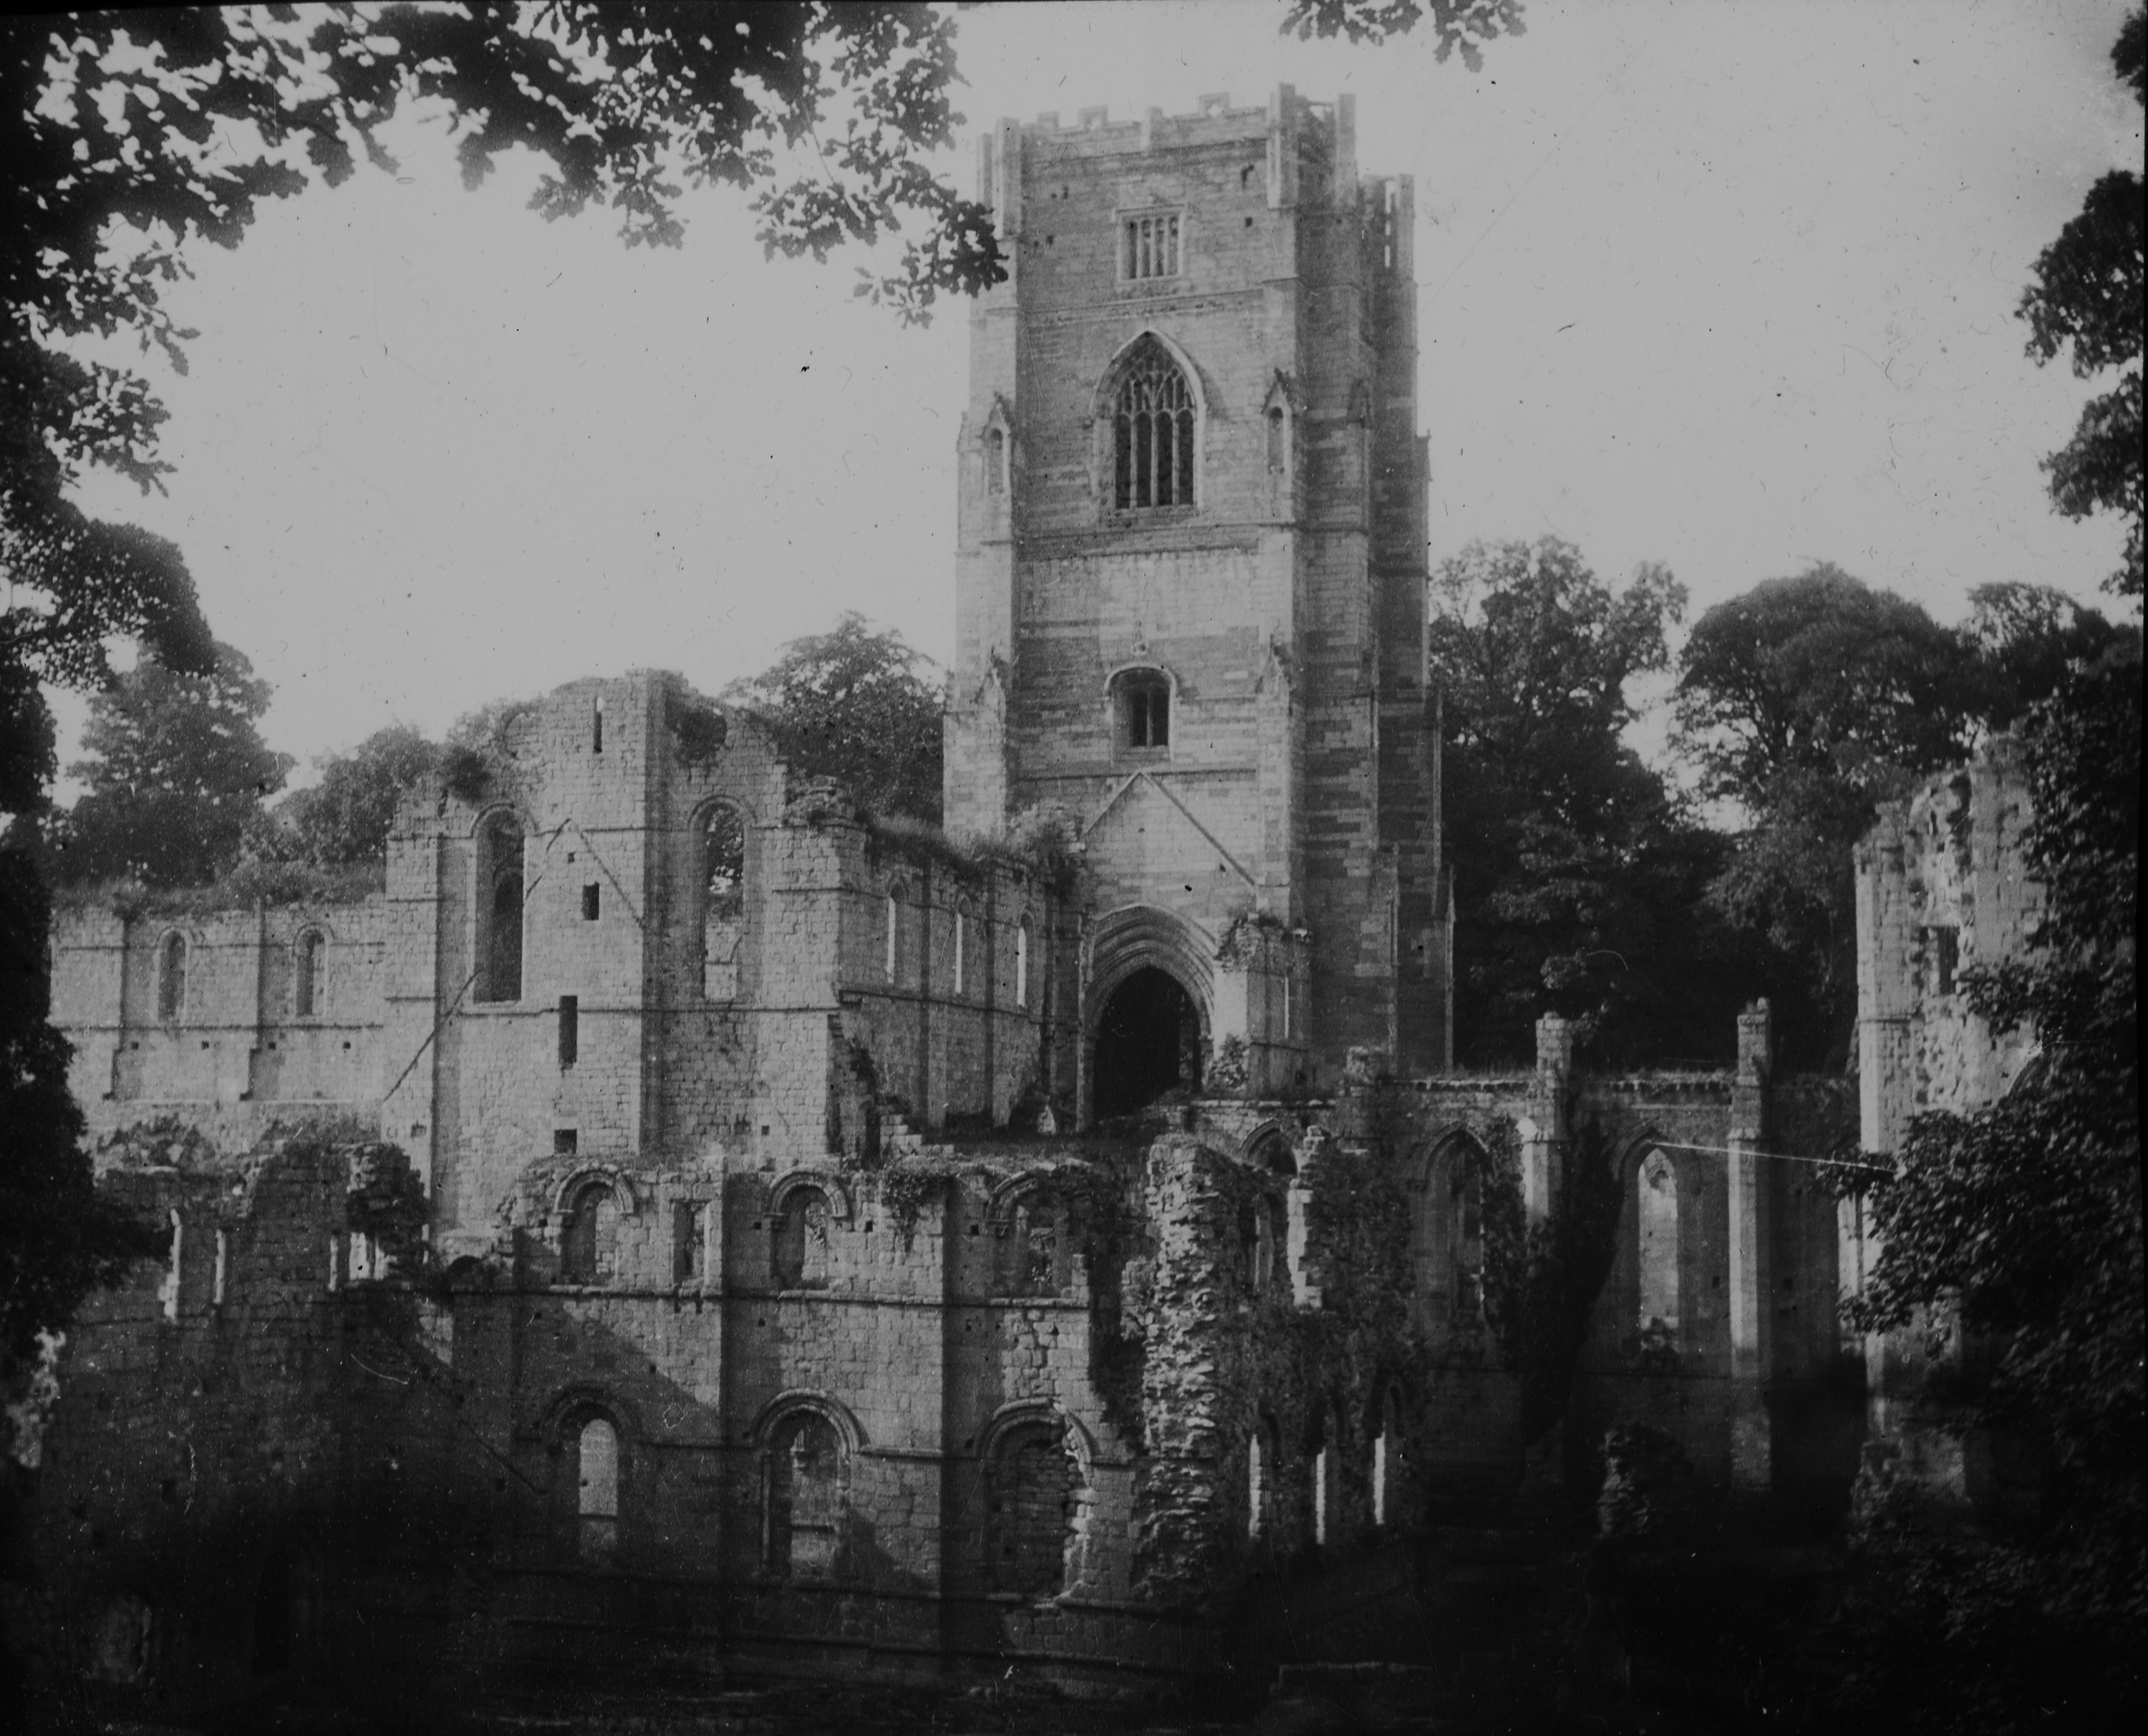 Fountains Abbey in England